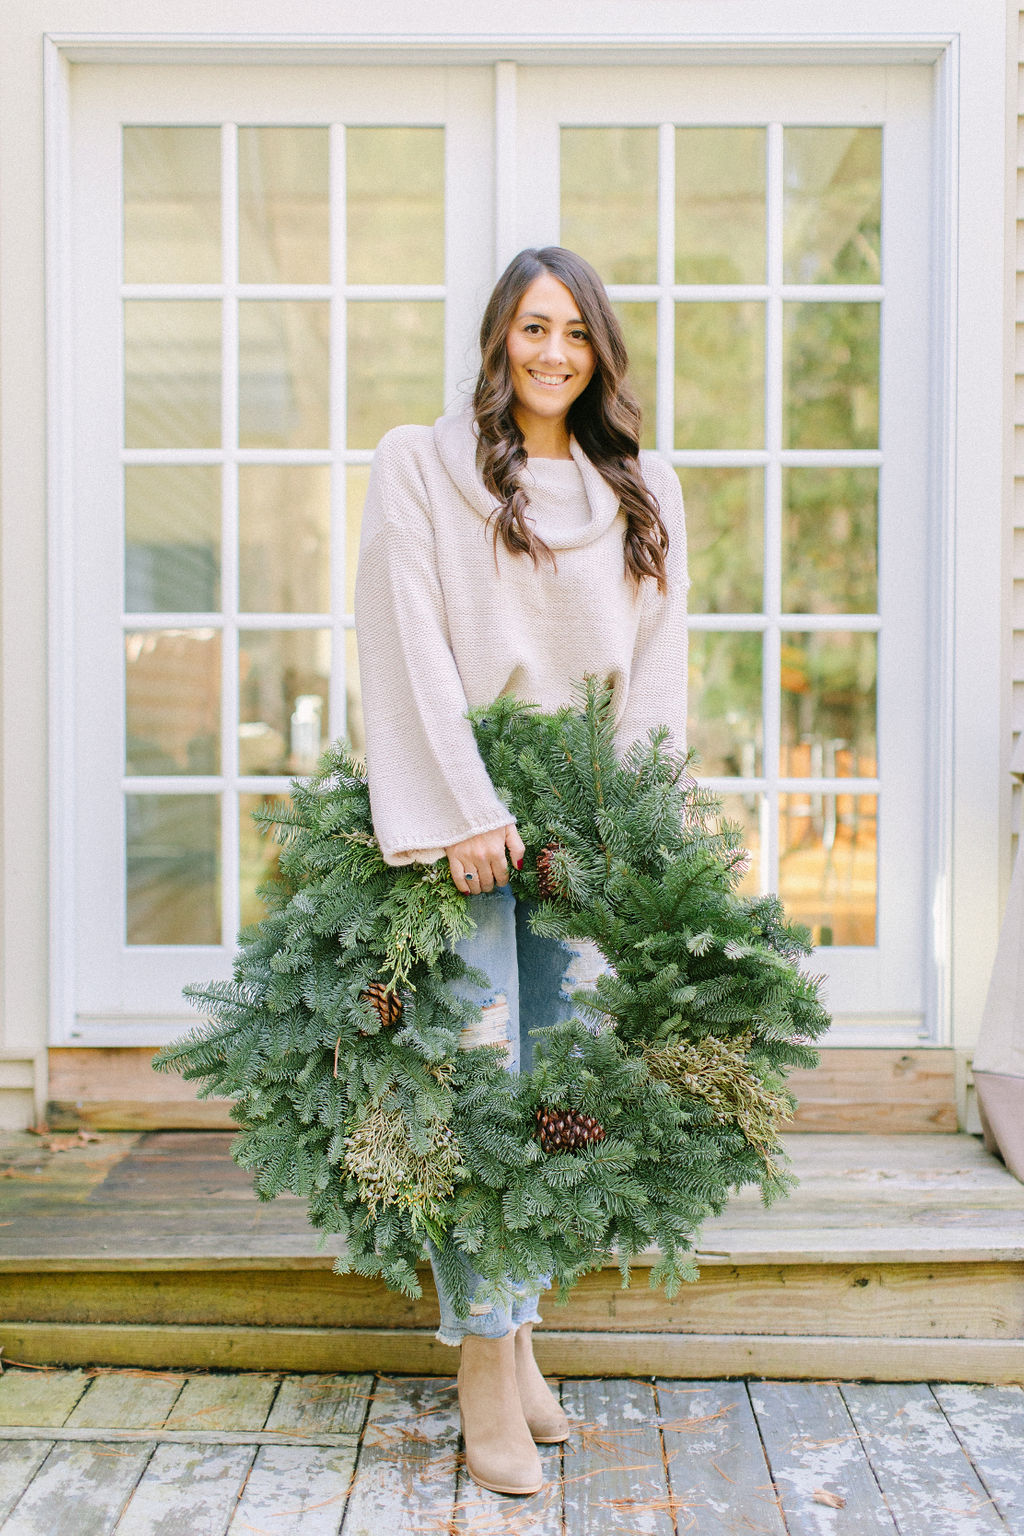 v]Do you love using live greens in your hoiday decor? Here are 10 hacks to keep your holiday greens alive longer to enjoy them all season long.